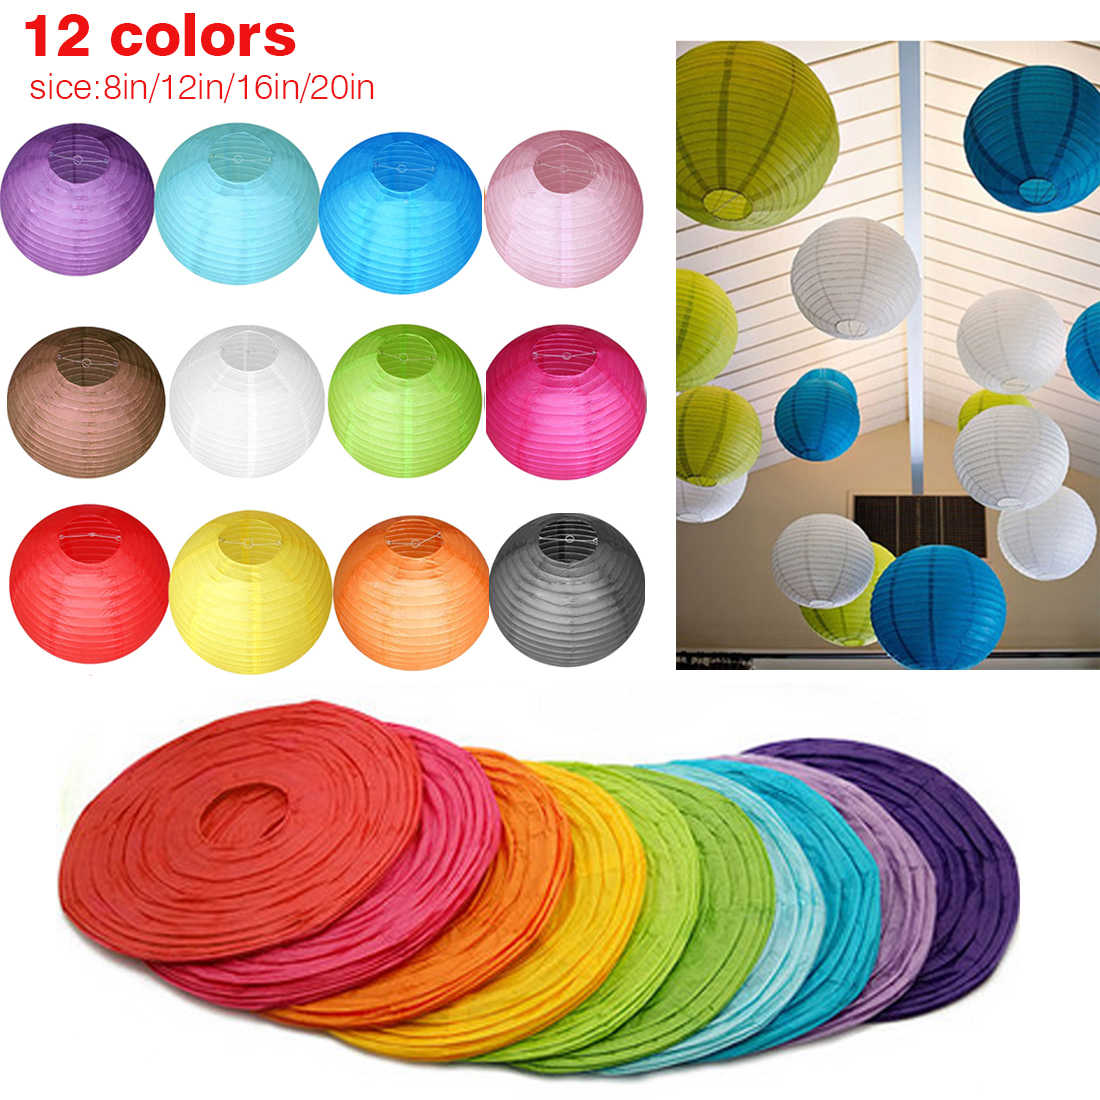 20cm/30cm/40cm Chinese Paper Lanterns Lamp Shade with Frame Round Decorative Rice Paper for Wedding Birthday Party Hanging Decor